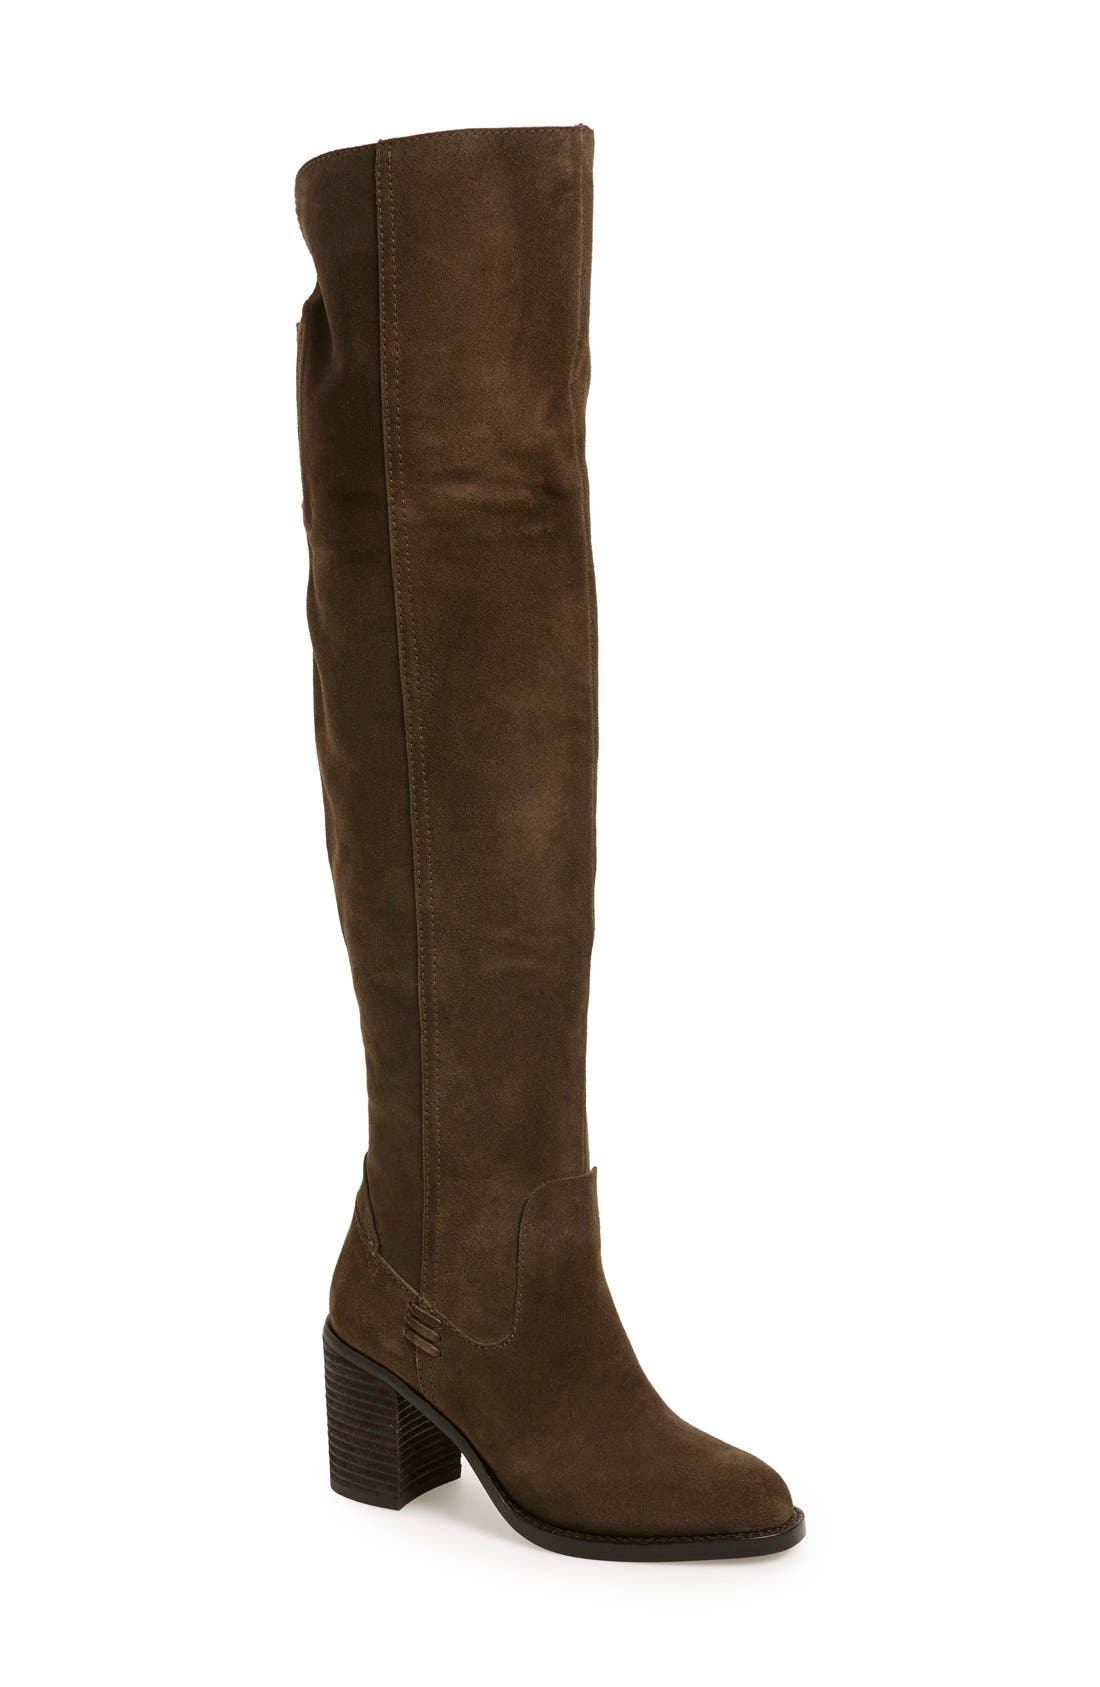 Main Image - Jeffrey Campbell 'Raylan' Over the Knee Boot (Women)